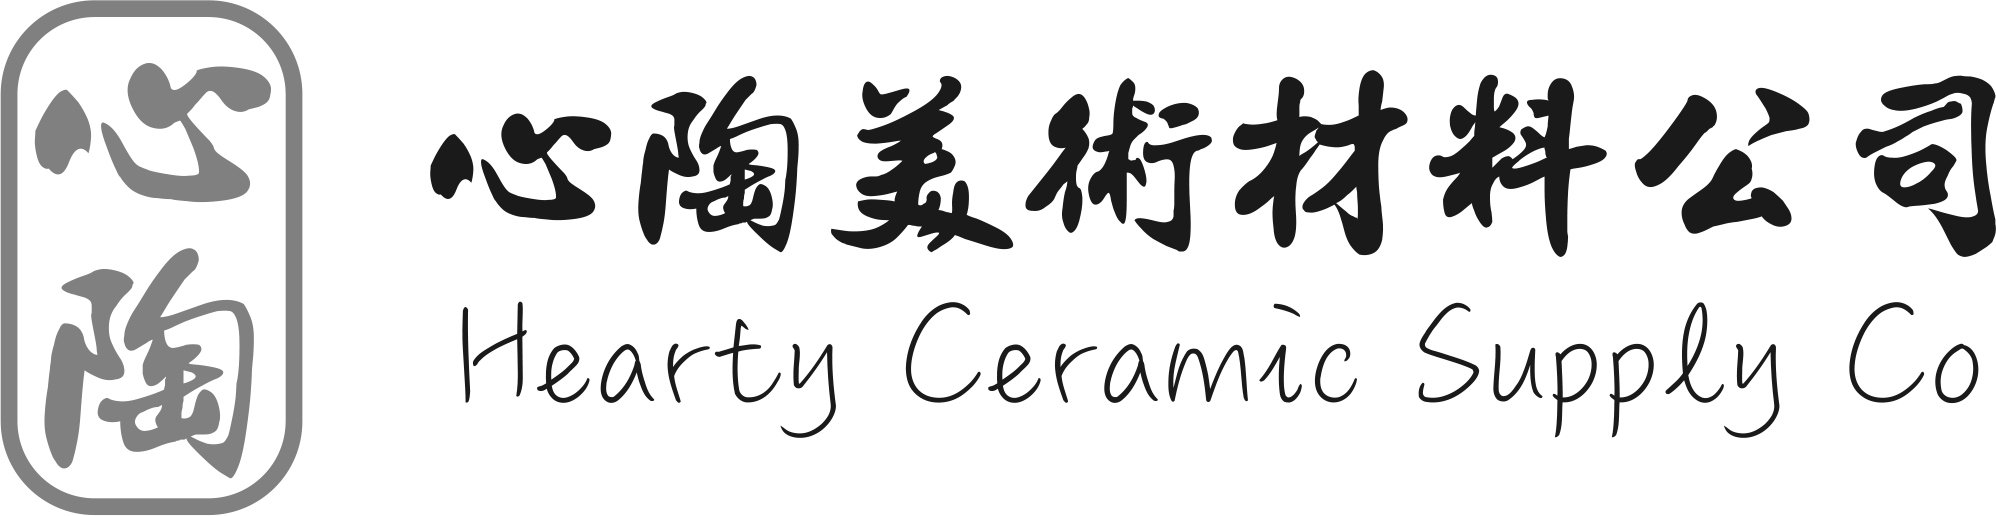 Hearty Ceramic Supply Company